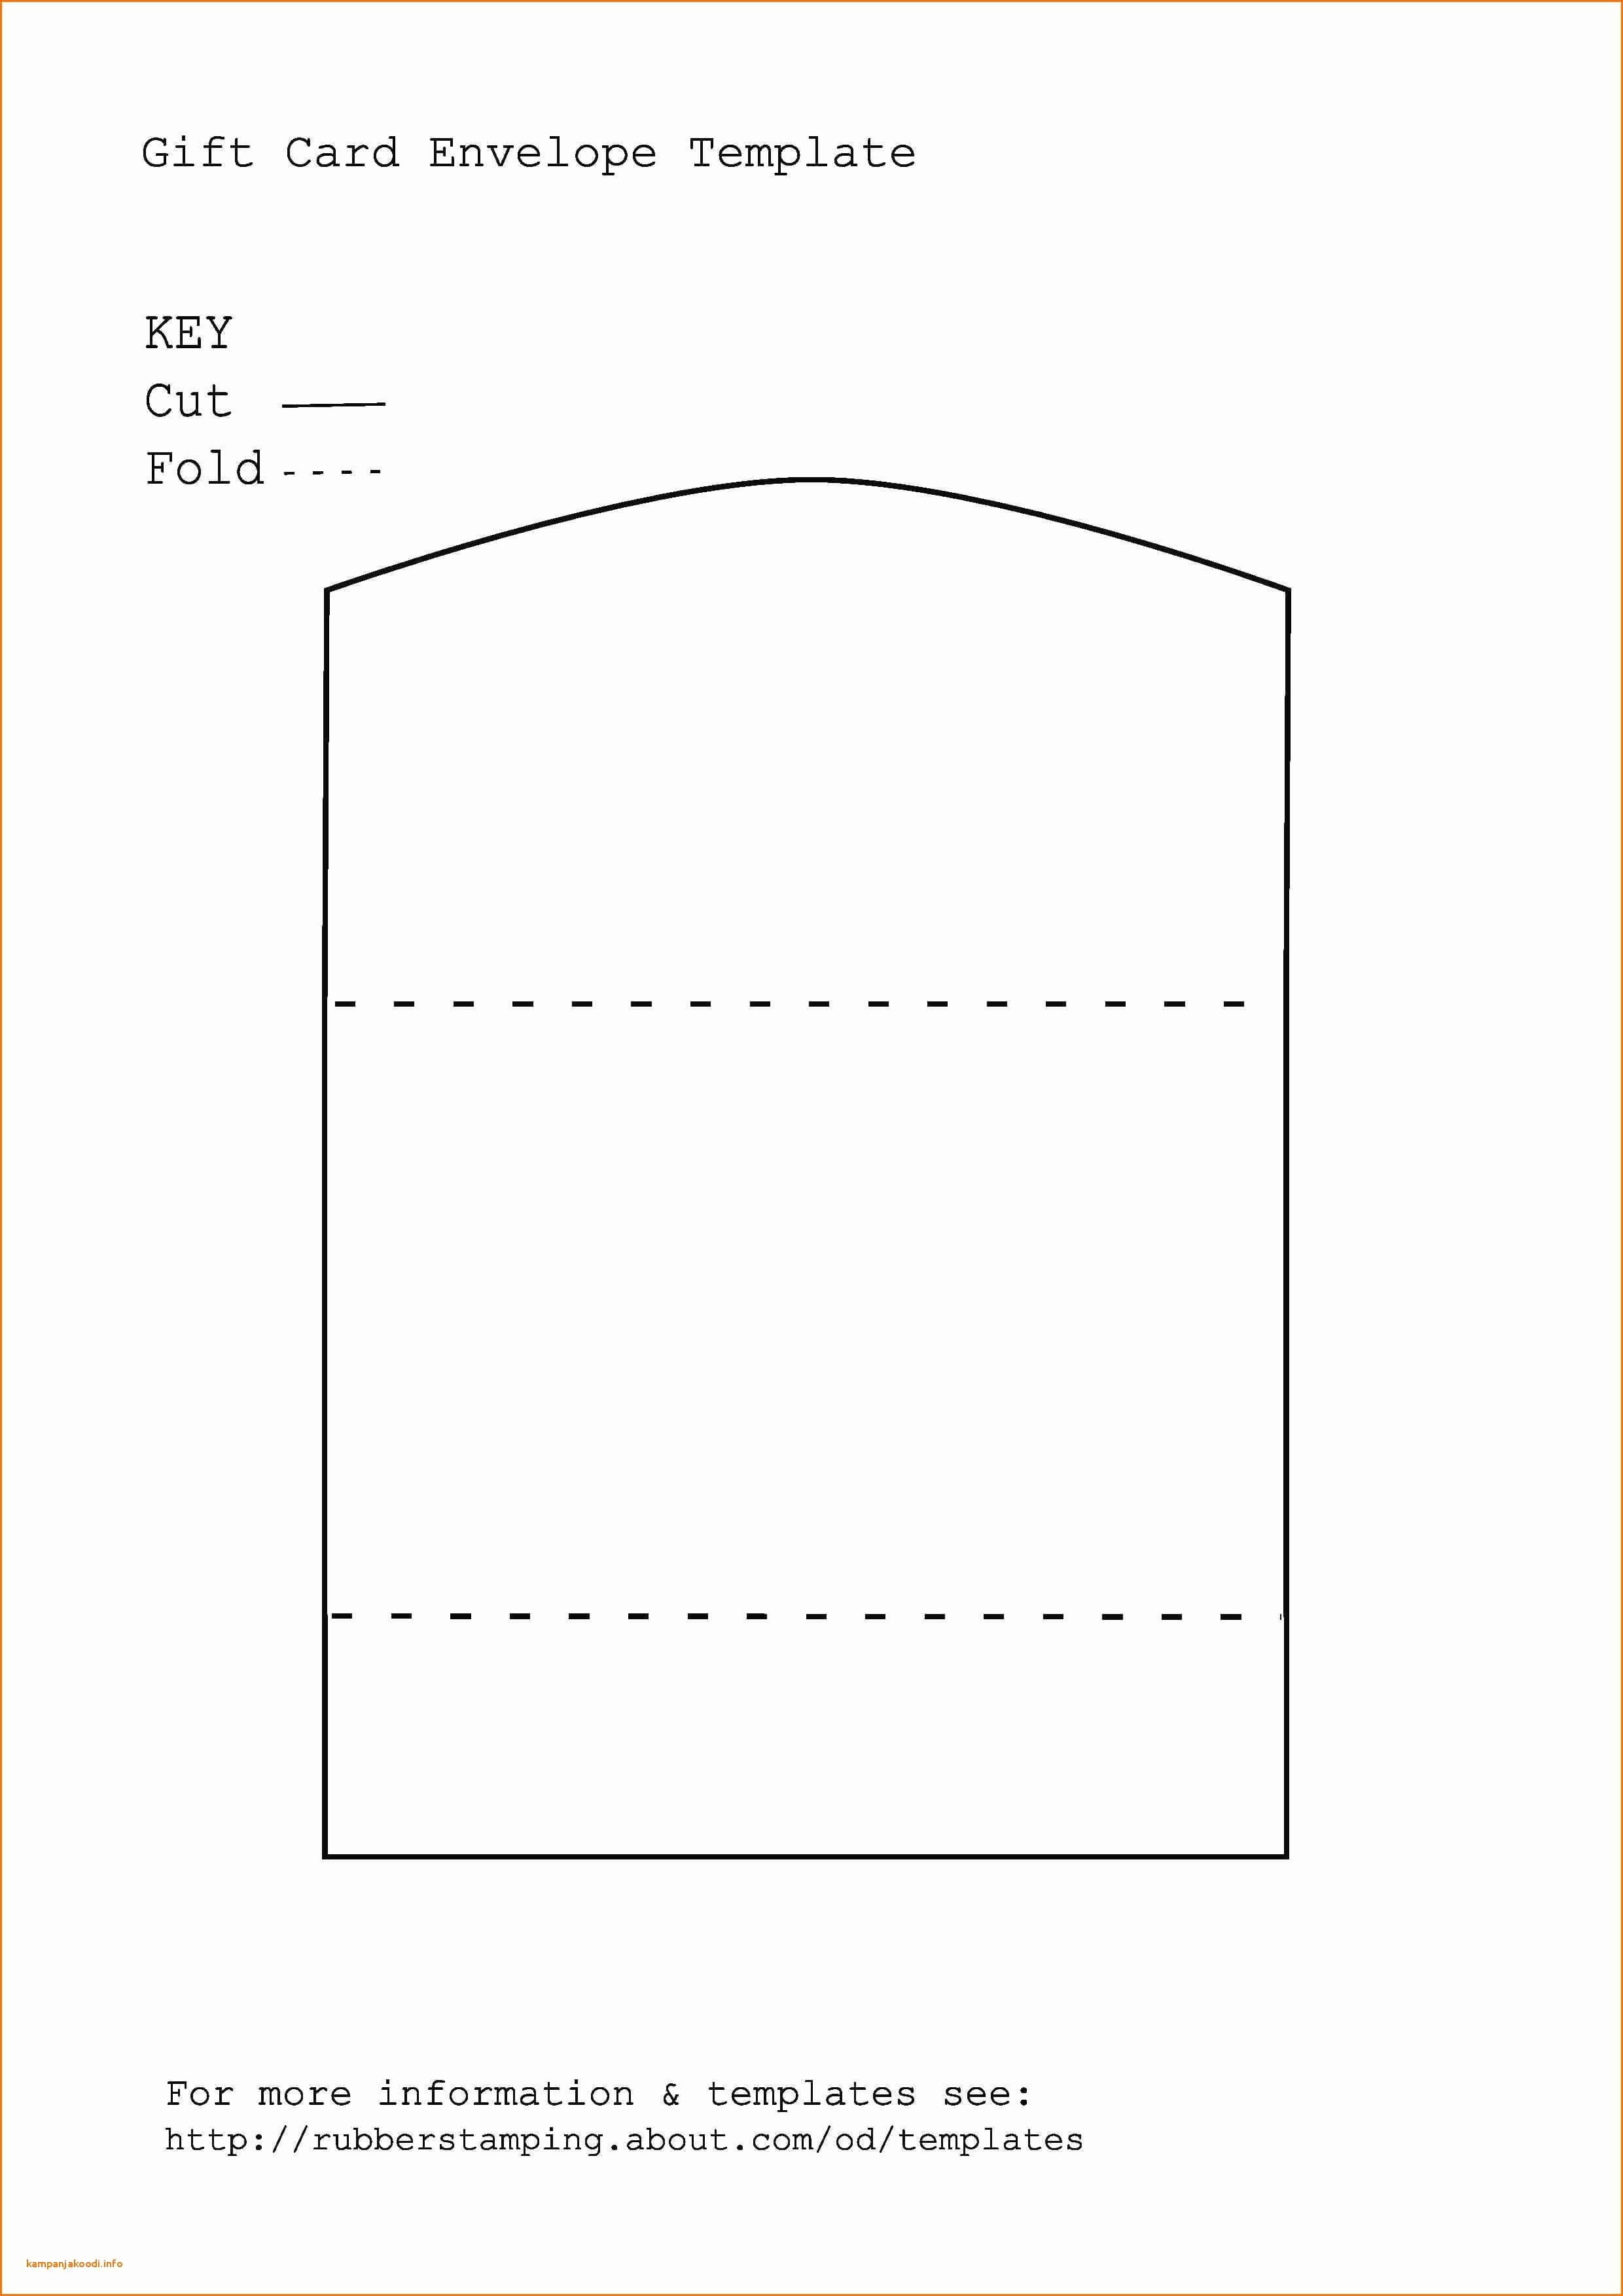 9 Lovely Image Of Tent Card Template 6 Per Sheet | News with regard to Place Card Template 6 Per Sheet